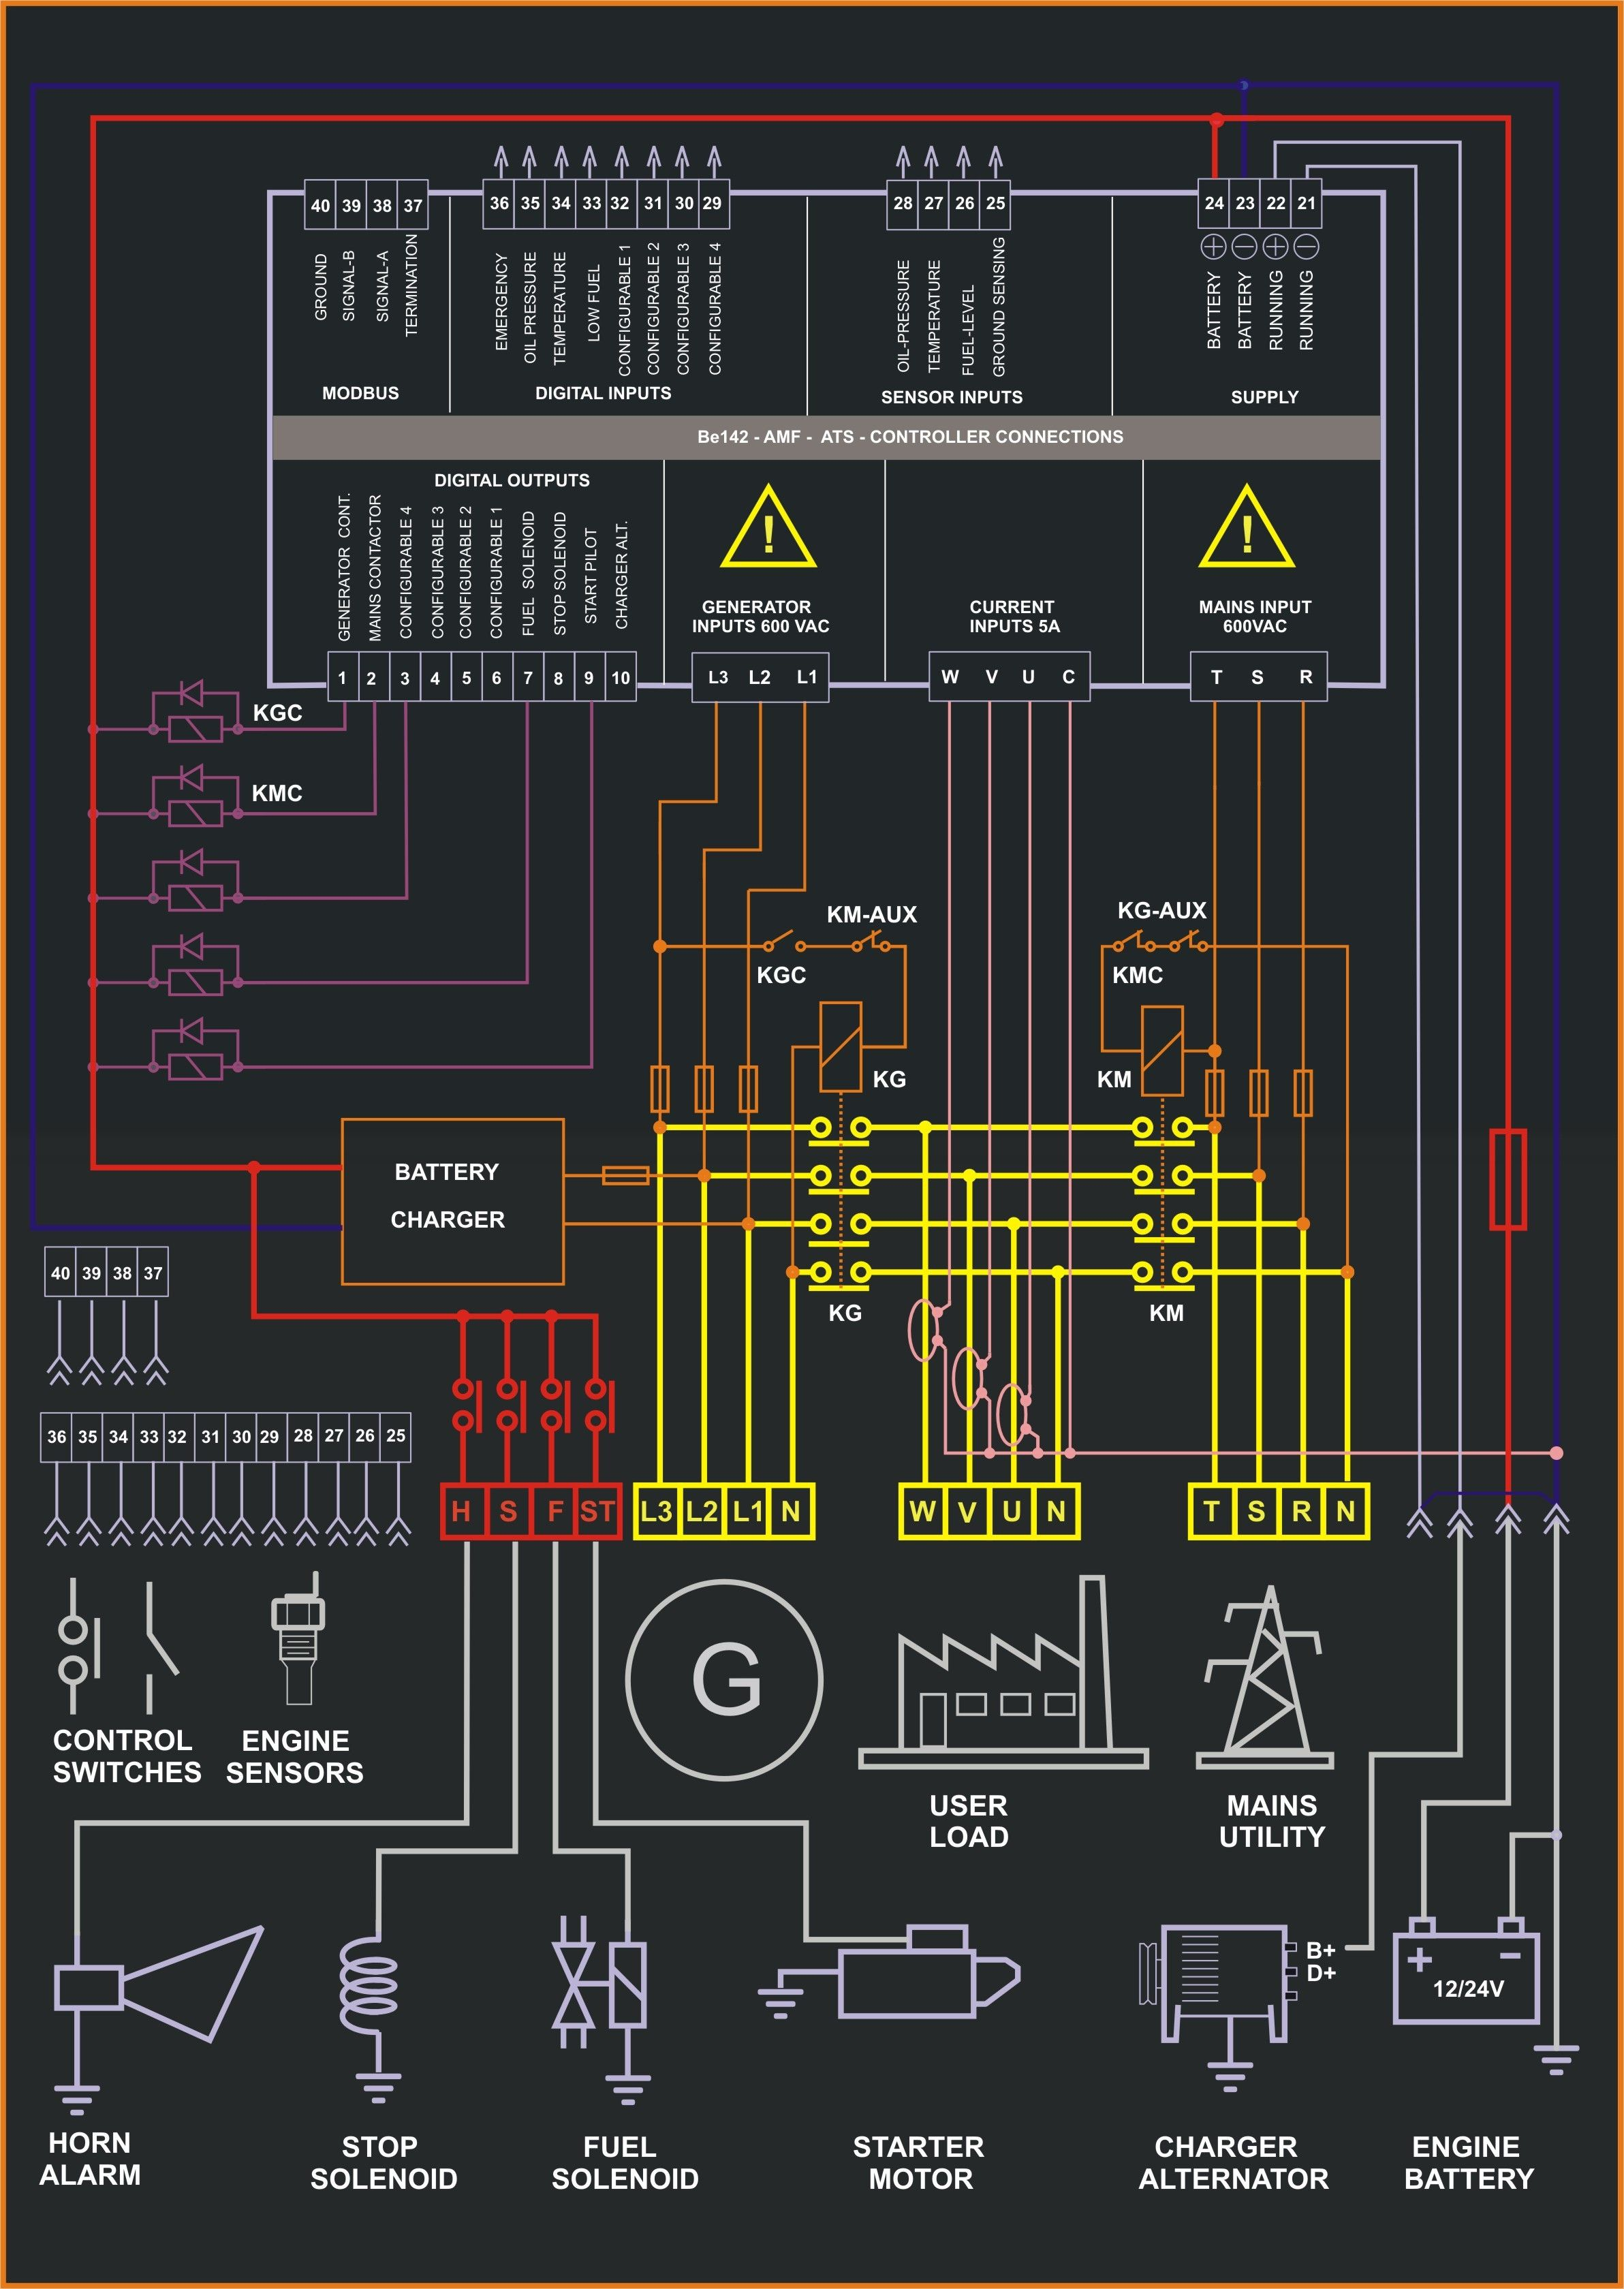 Electrical Panel Board Wiring Diagram Pdf Fresh 41 Awesome Circuit on 200 amp panel wiring diagram, electrical panel box diagram, 100 amp breaker box diagram, ge breaker box diagram, circuit breaker diagram, basic wiring from breaker box, 3 phase breaker box diagram, basic electrical wiring breaker box, main electrical panel wiring diagram, service panel diagram, basic electrical wiring diagrams, home breaker box diagram, sub panel wiring diagram,